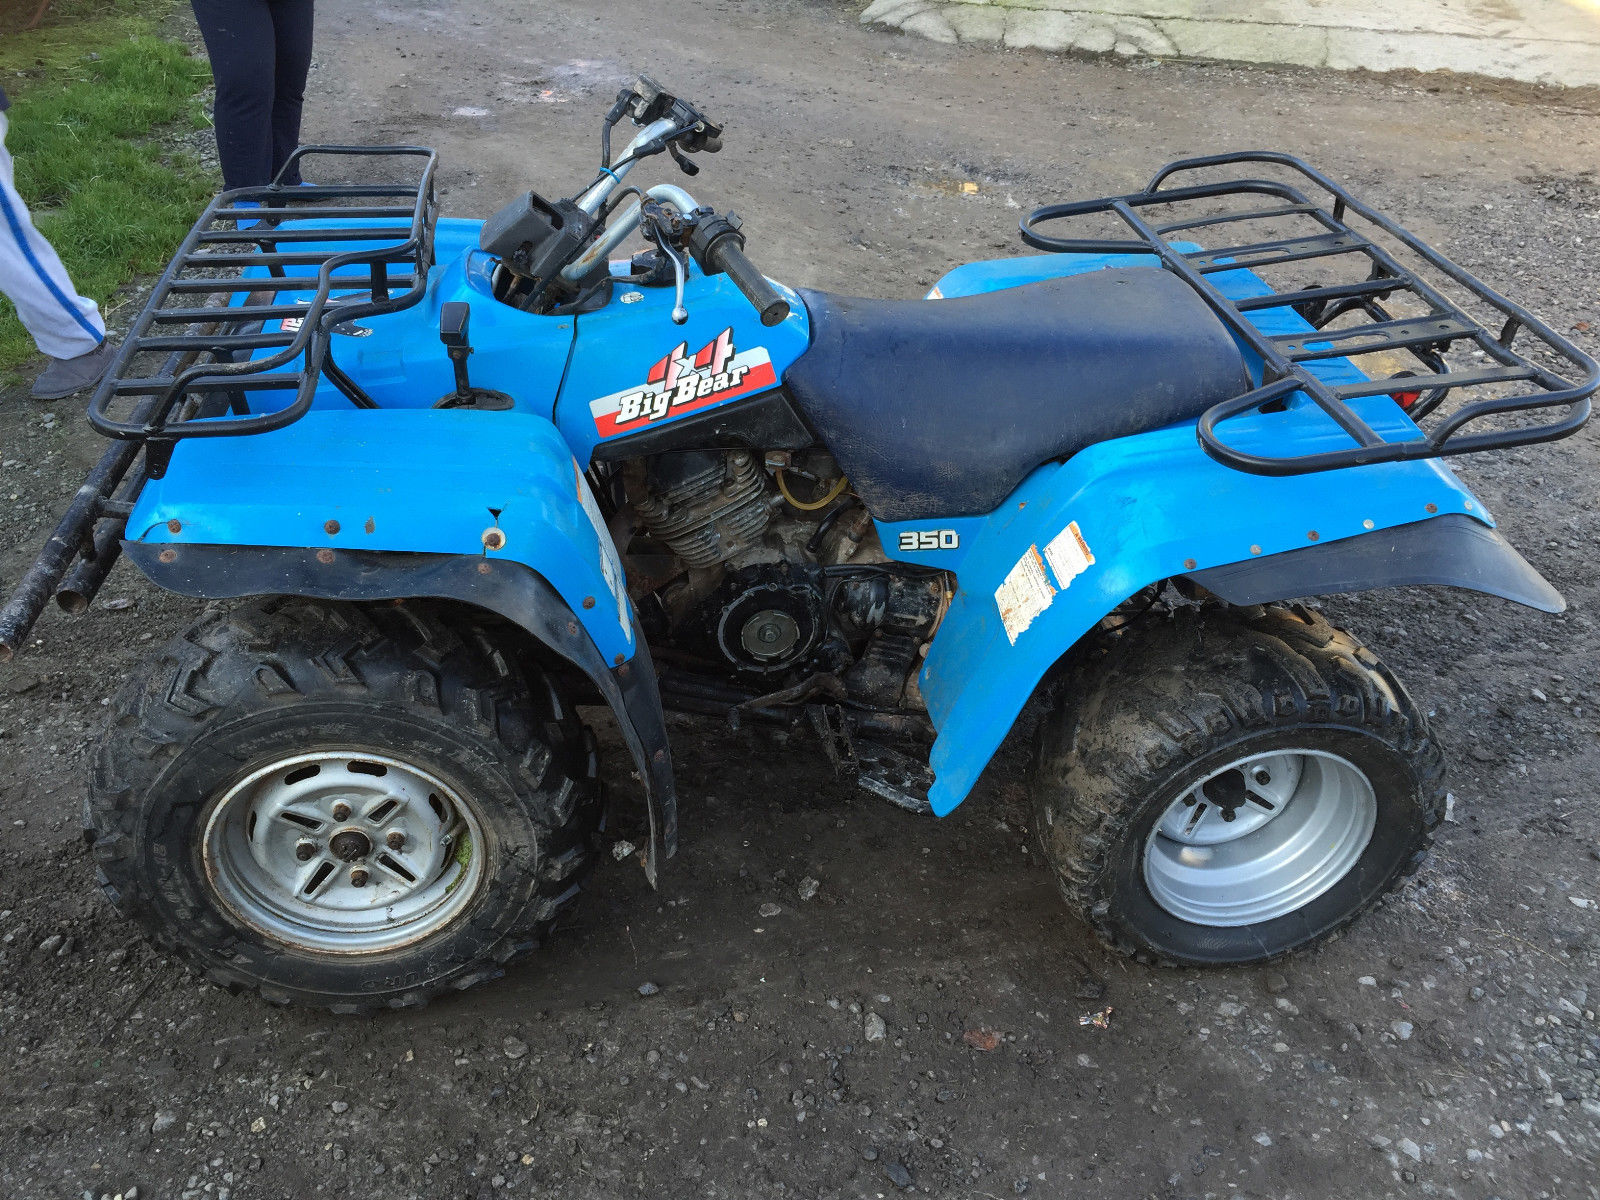 yamaha big bear 350 4x4 spares or repair quad bike. Black Bedroom Furniture Sets. Home Design Ideas